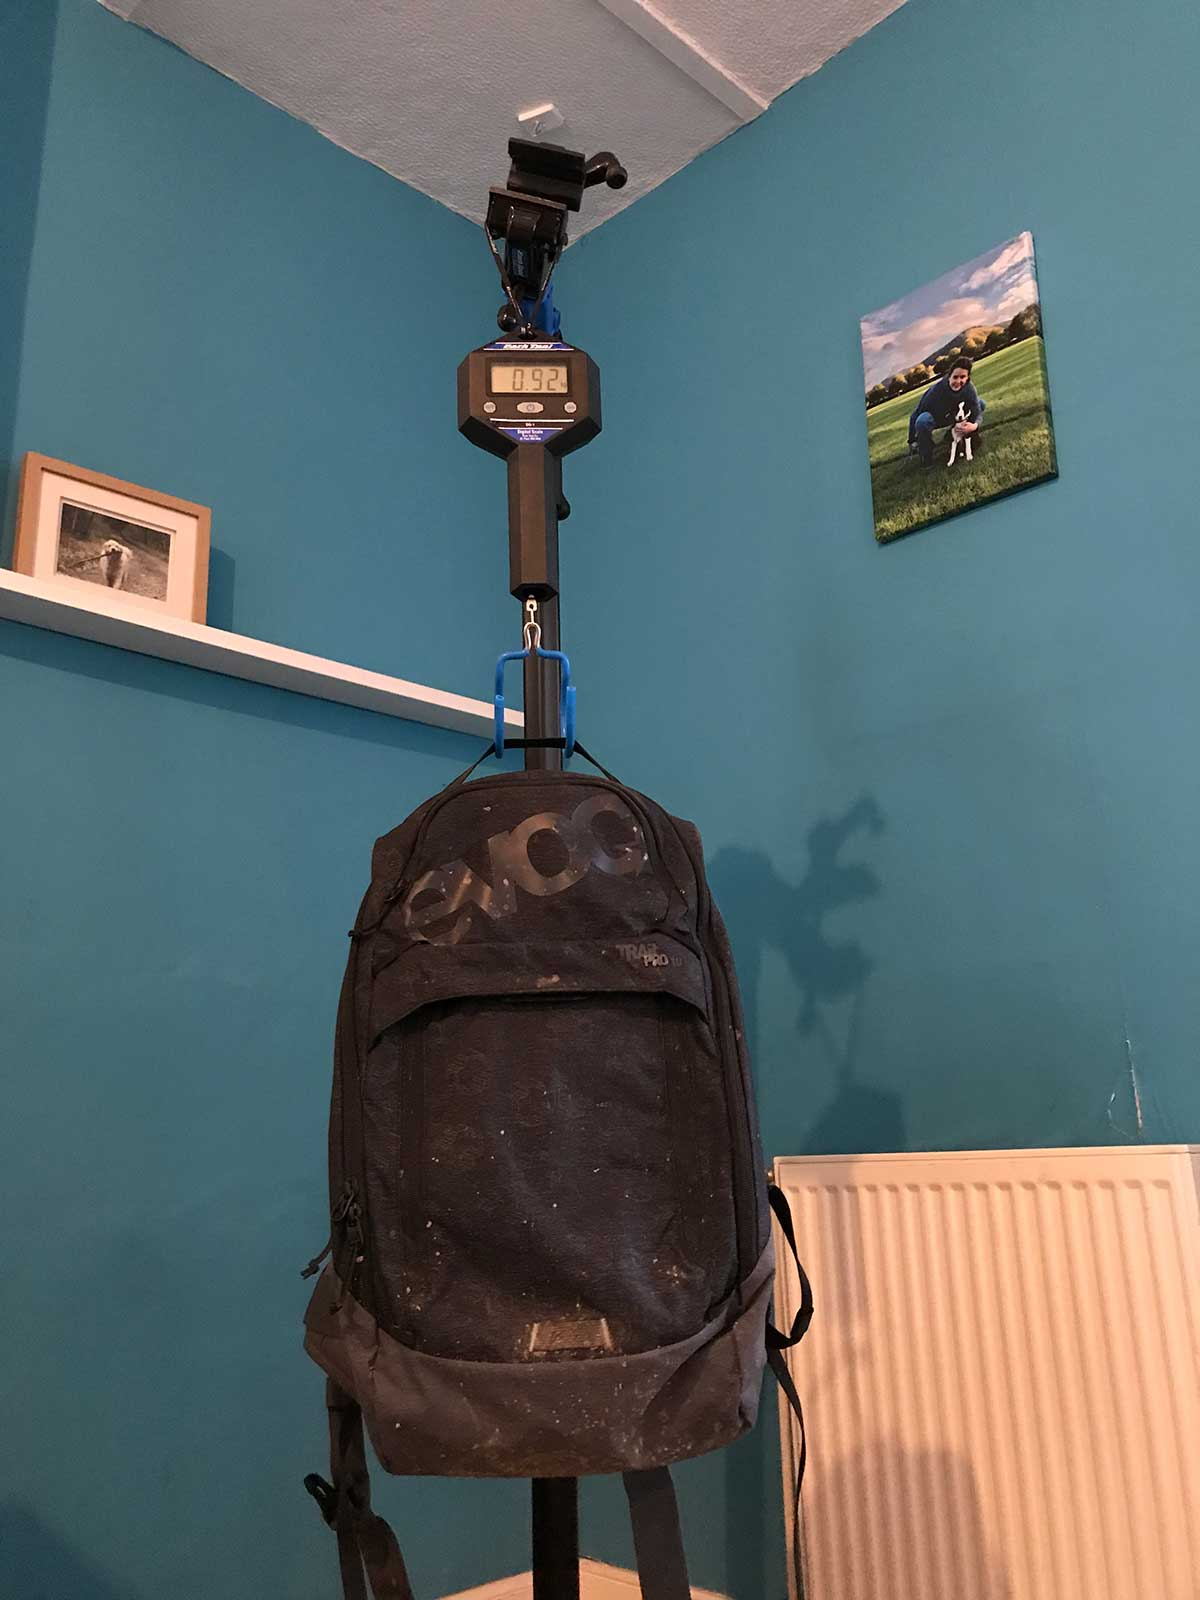 EVOC TRAIL PRO 10L WEIGHS 920G WITH BACK PROTECTOR LITESHIELD PLUS